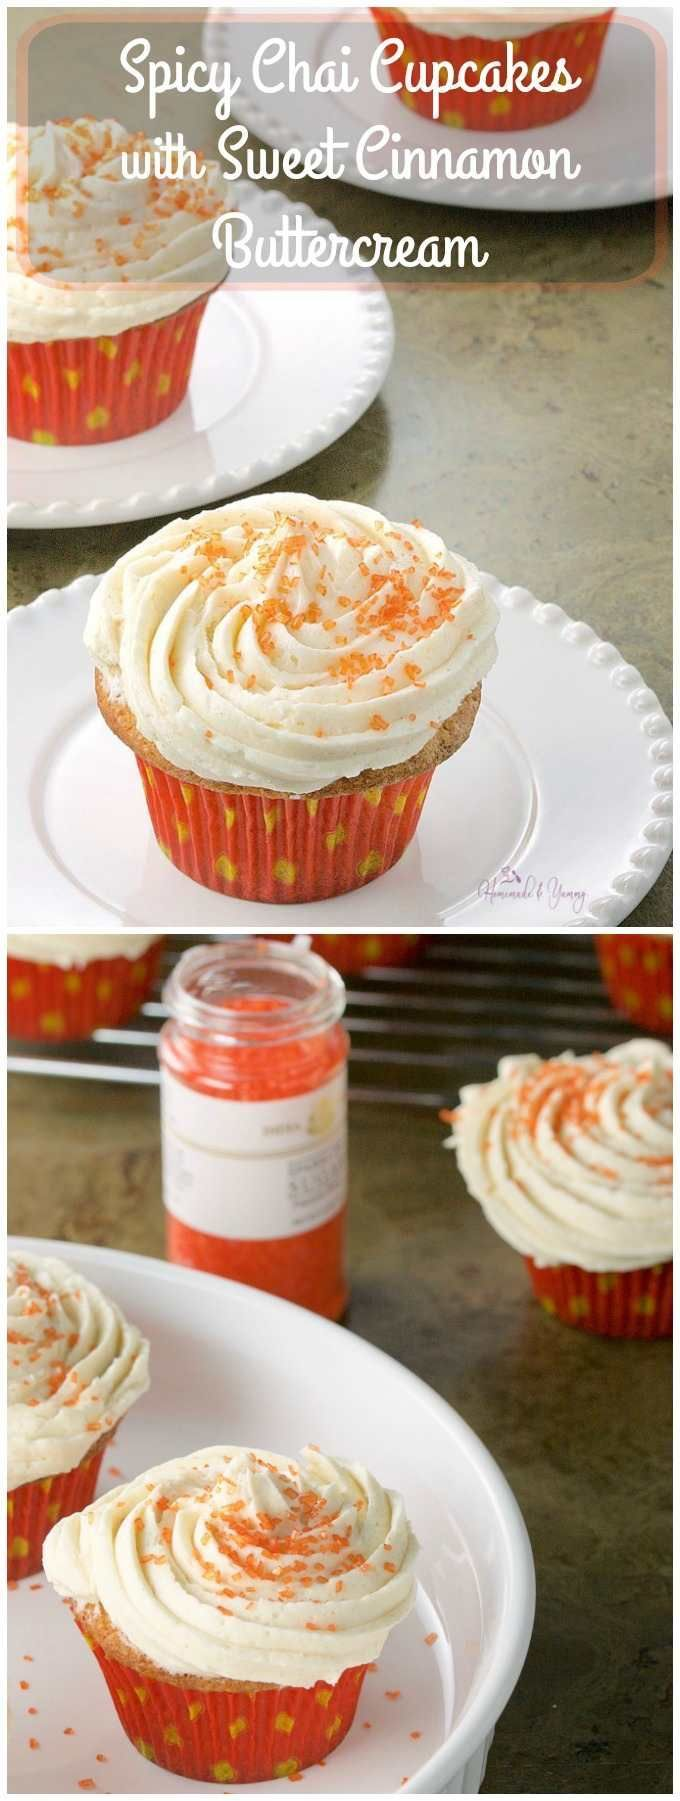 Spicy Chai Cupcakes with Sweet Cinnamon Buttercream will delight your taste buds. Spicy, sweet and oh so addictive. Perfect for dessert.   http://homemadeandyummy.com